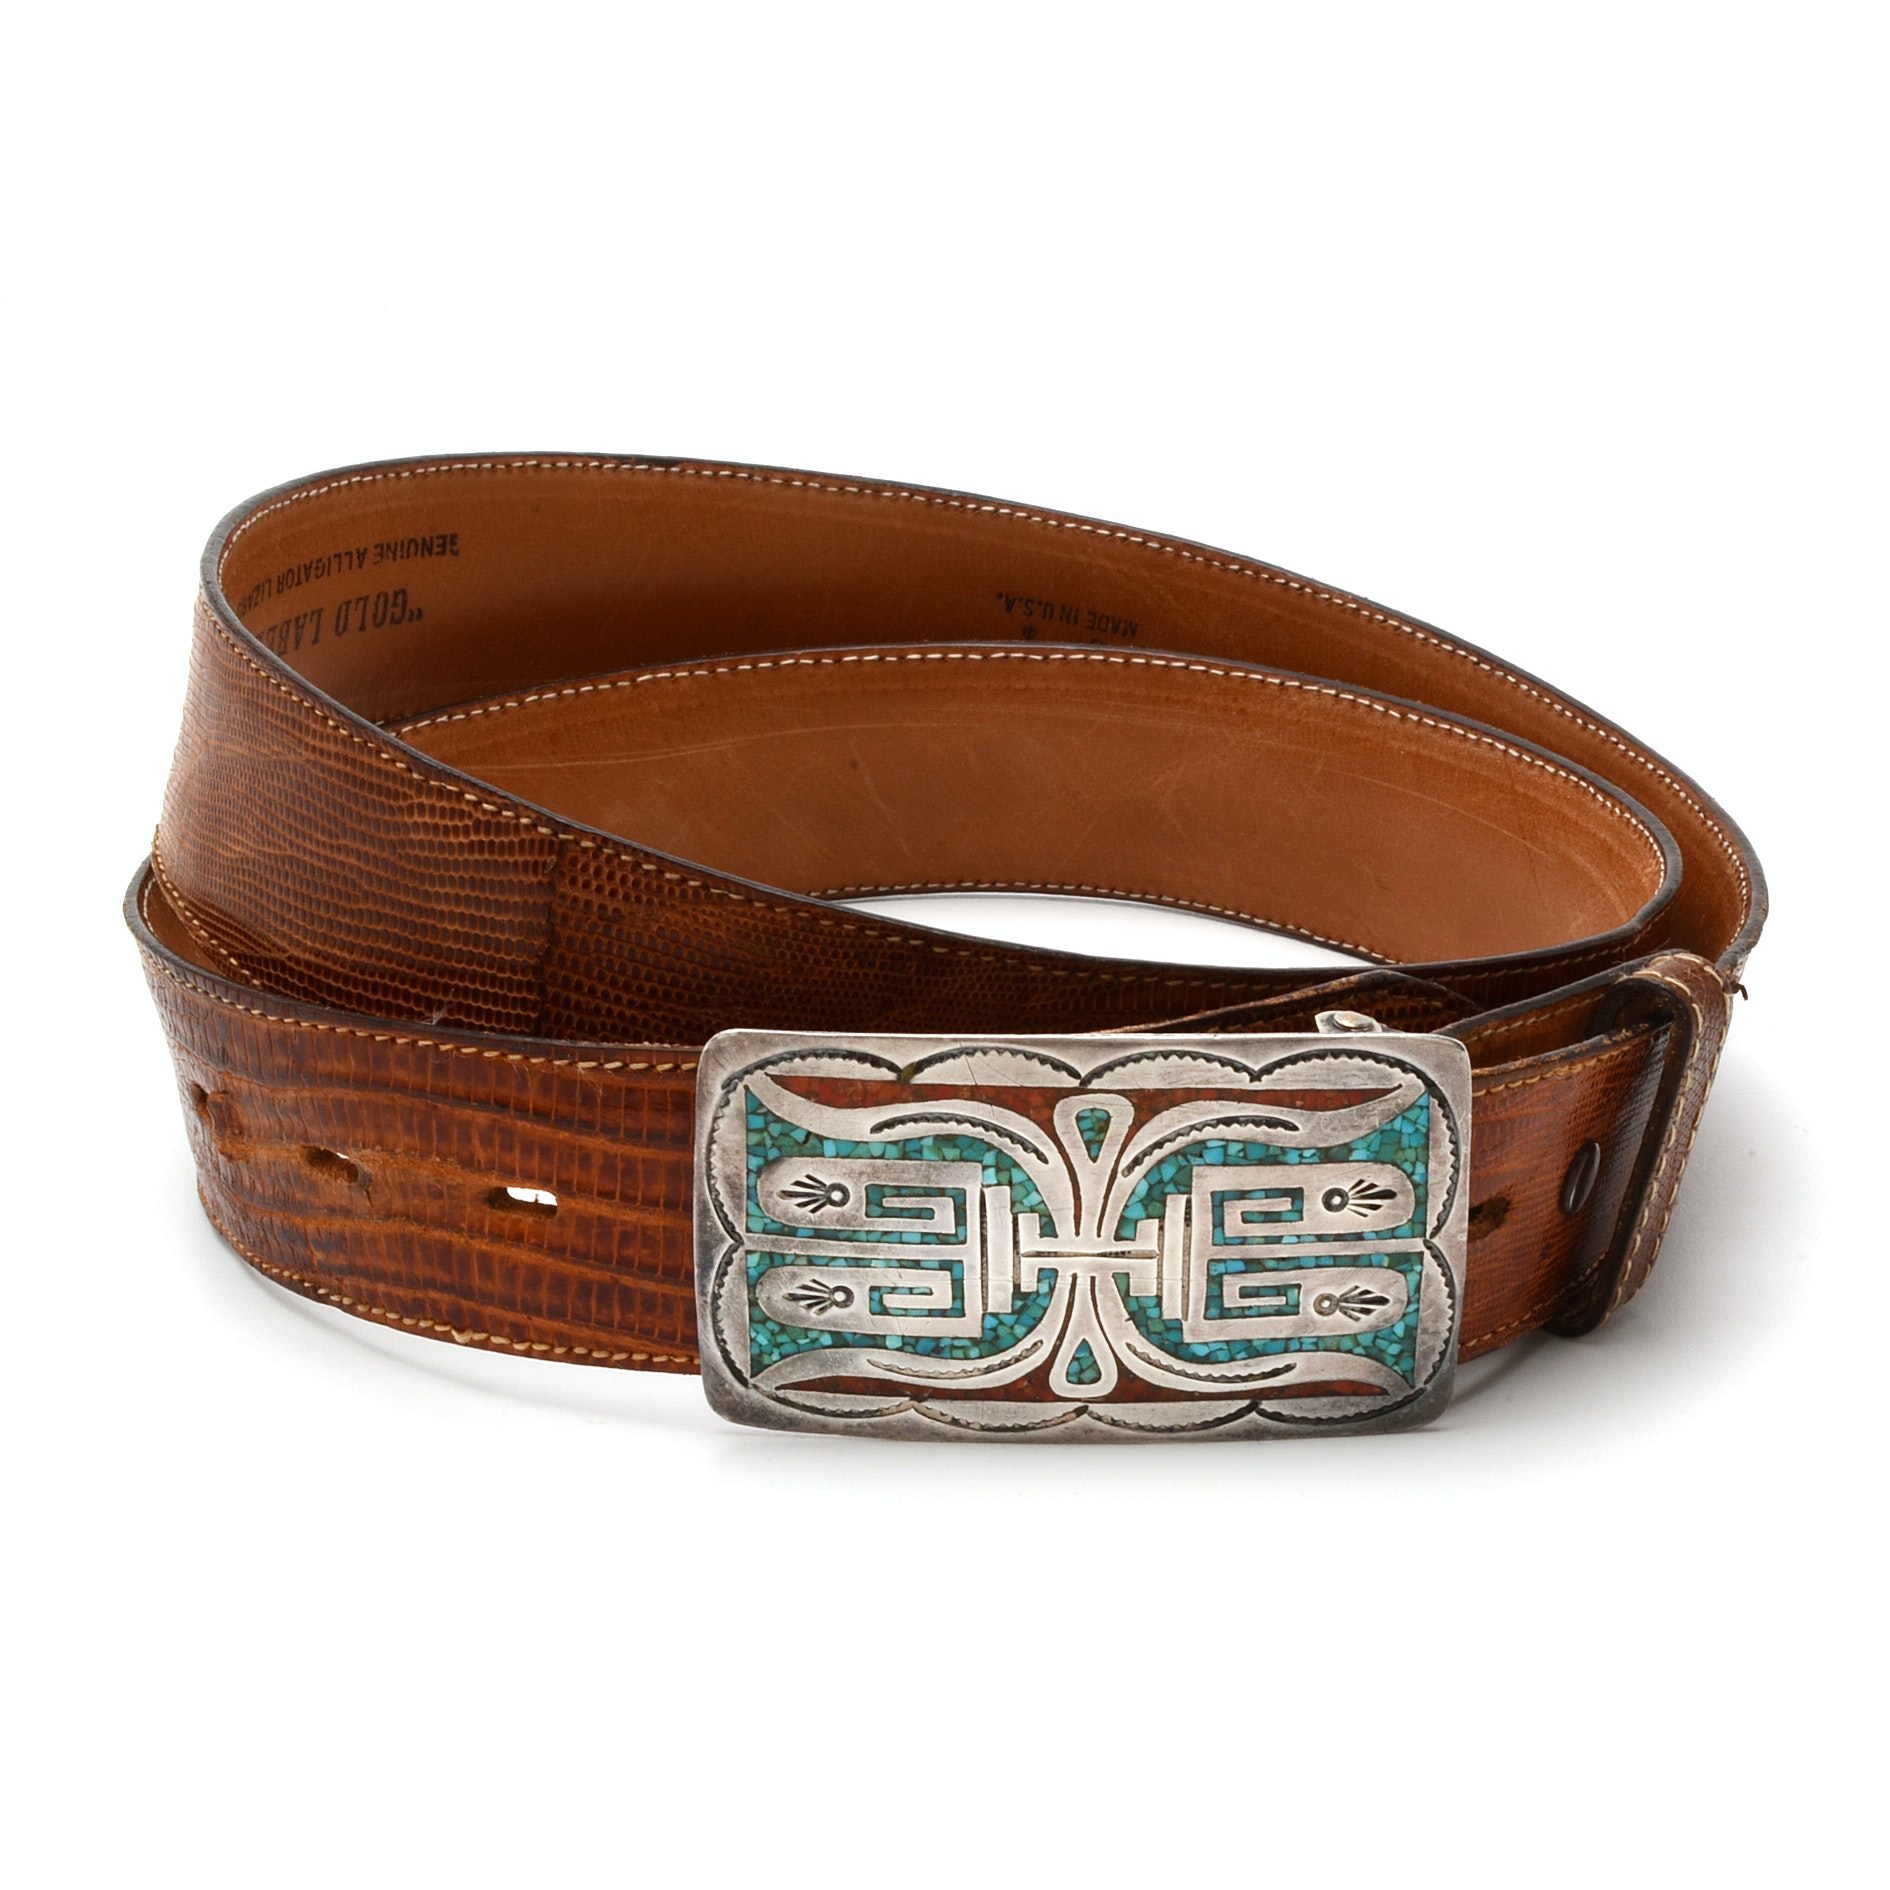 Native American Signed Sterling Silver Dyed Chip Inlaid Buckle on Lizard Belt